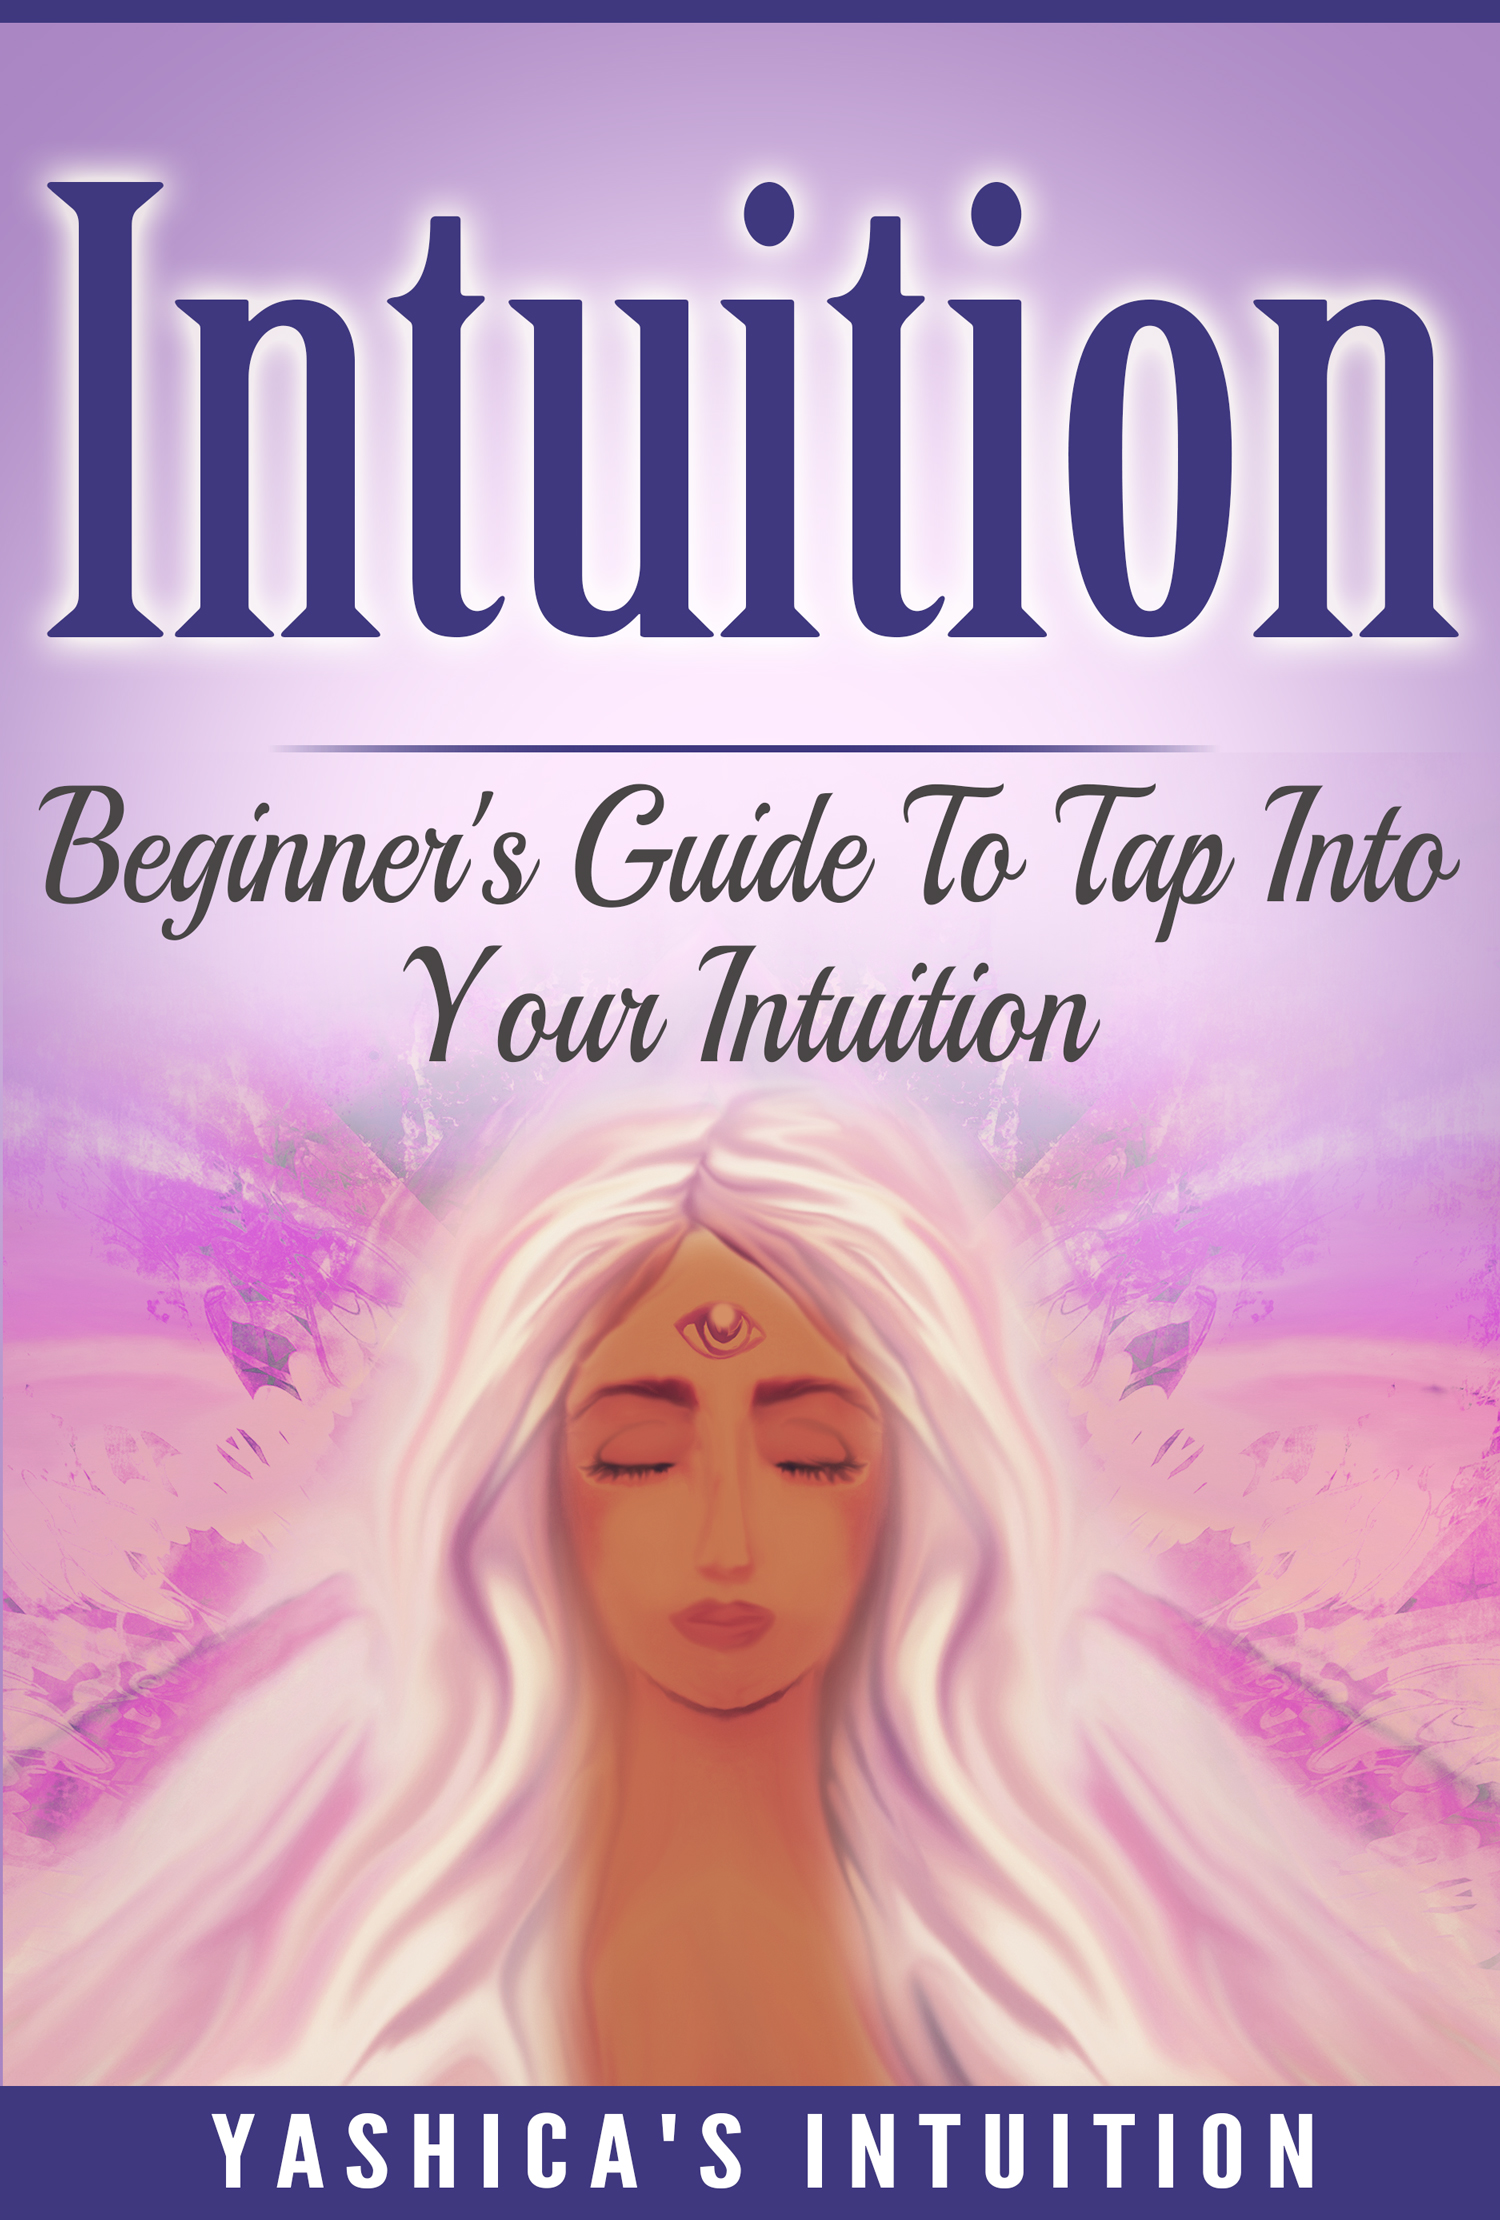 intuition-cover.jpg